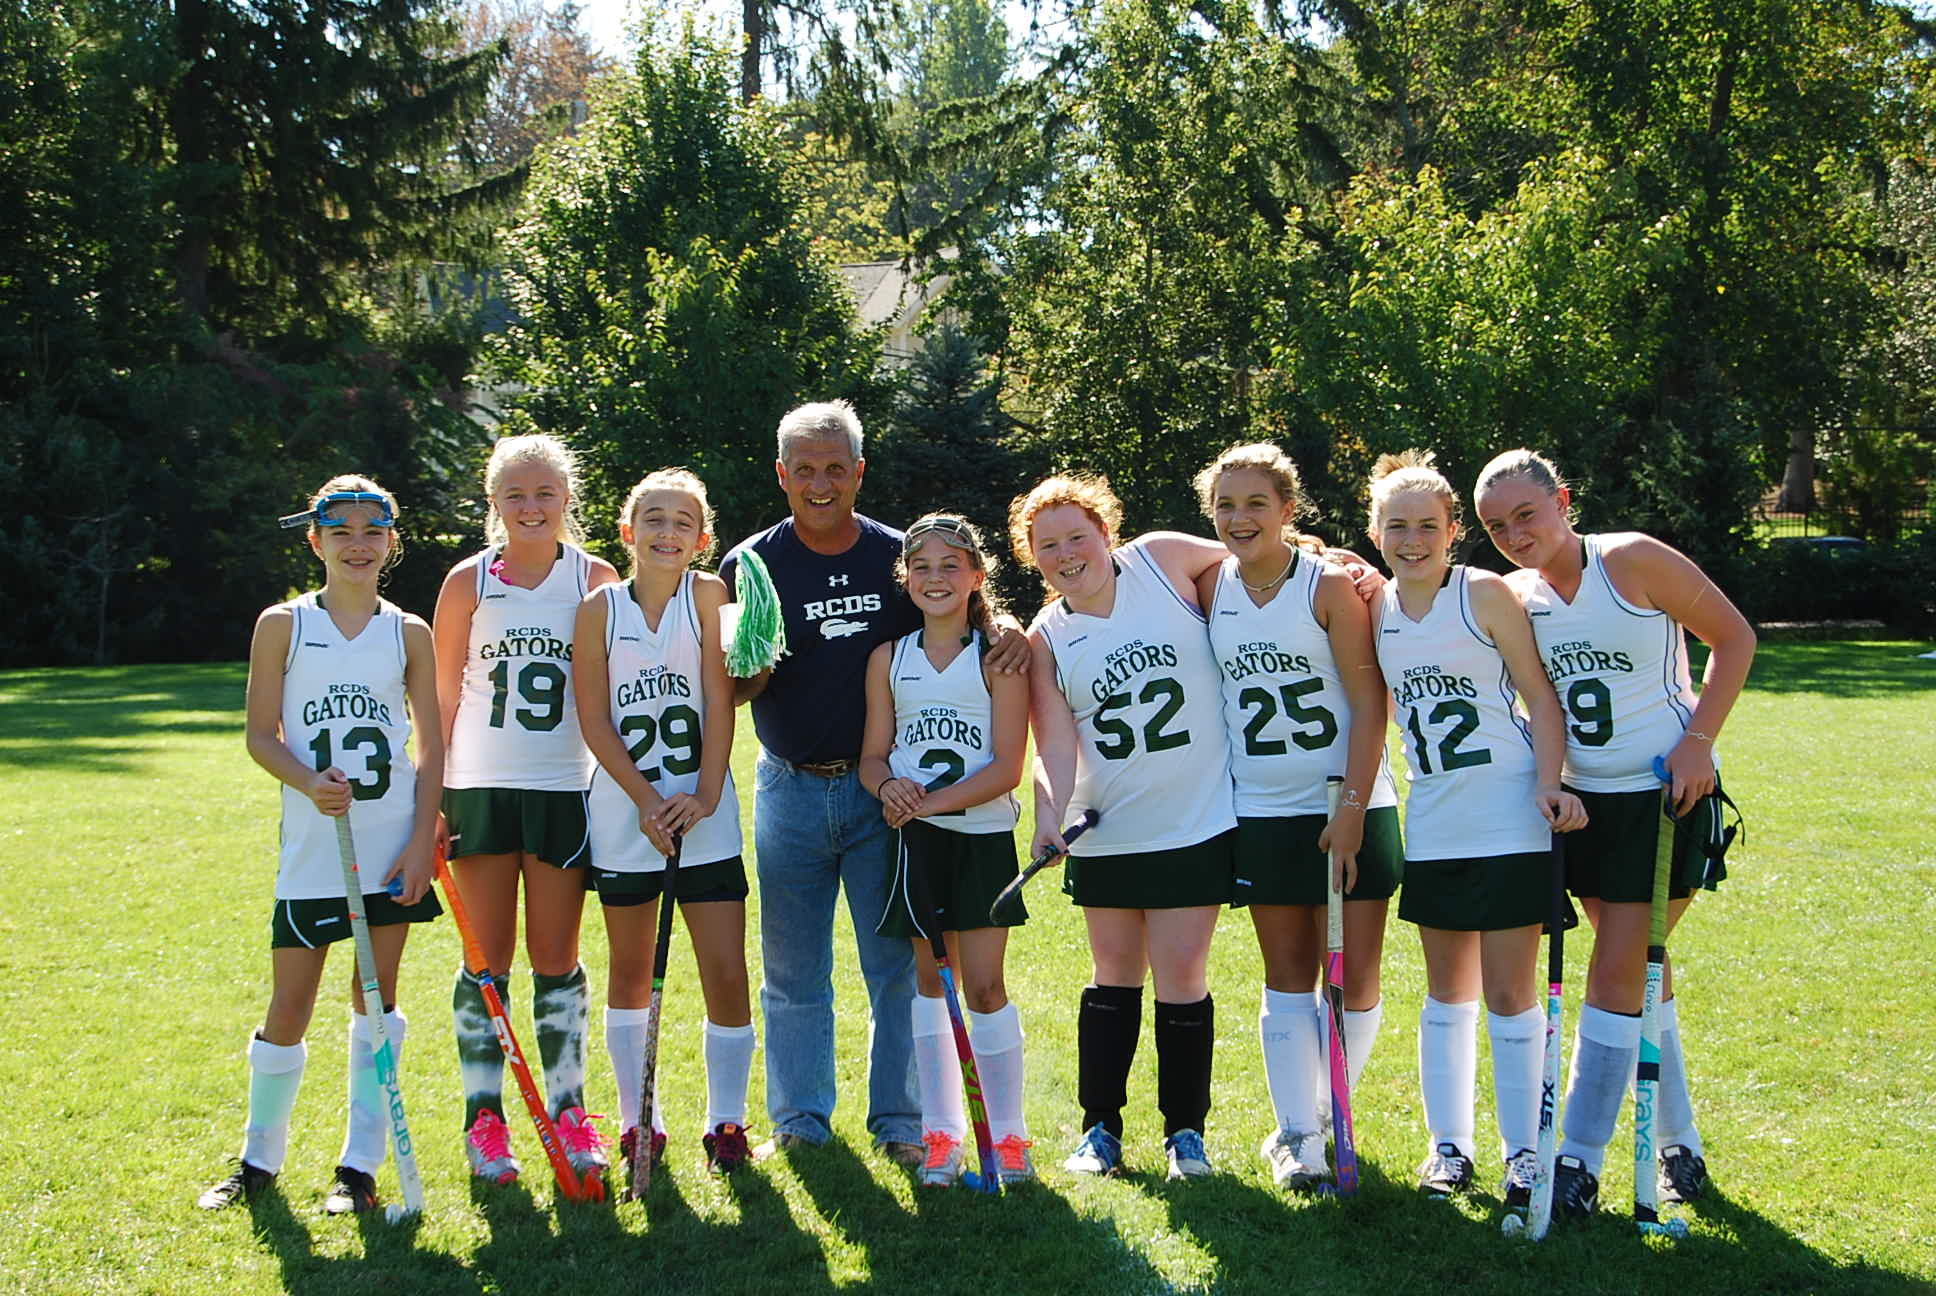 FIeld hockey players with a coach